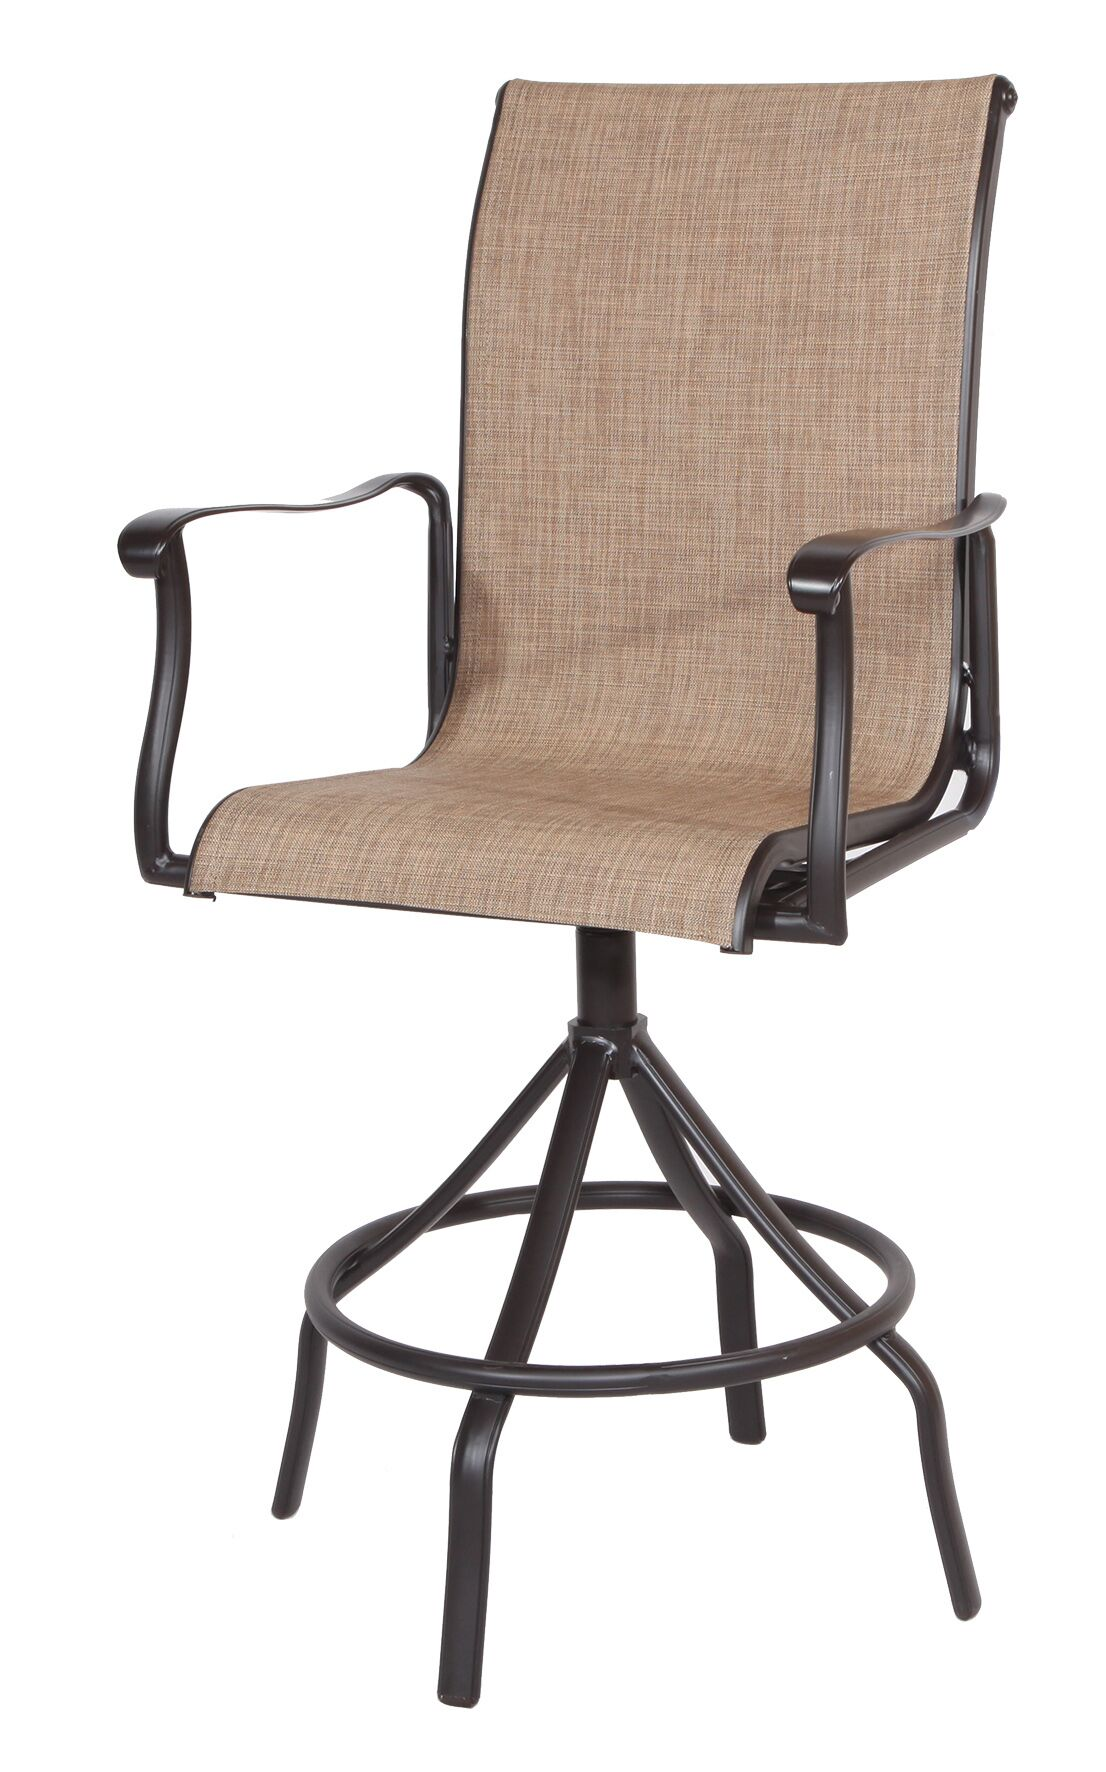 Bar Chairs Sold at Lowes Stores Recalled Due to Fall